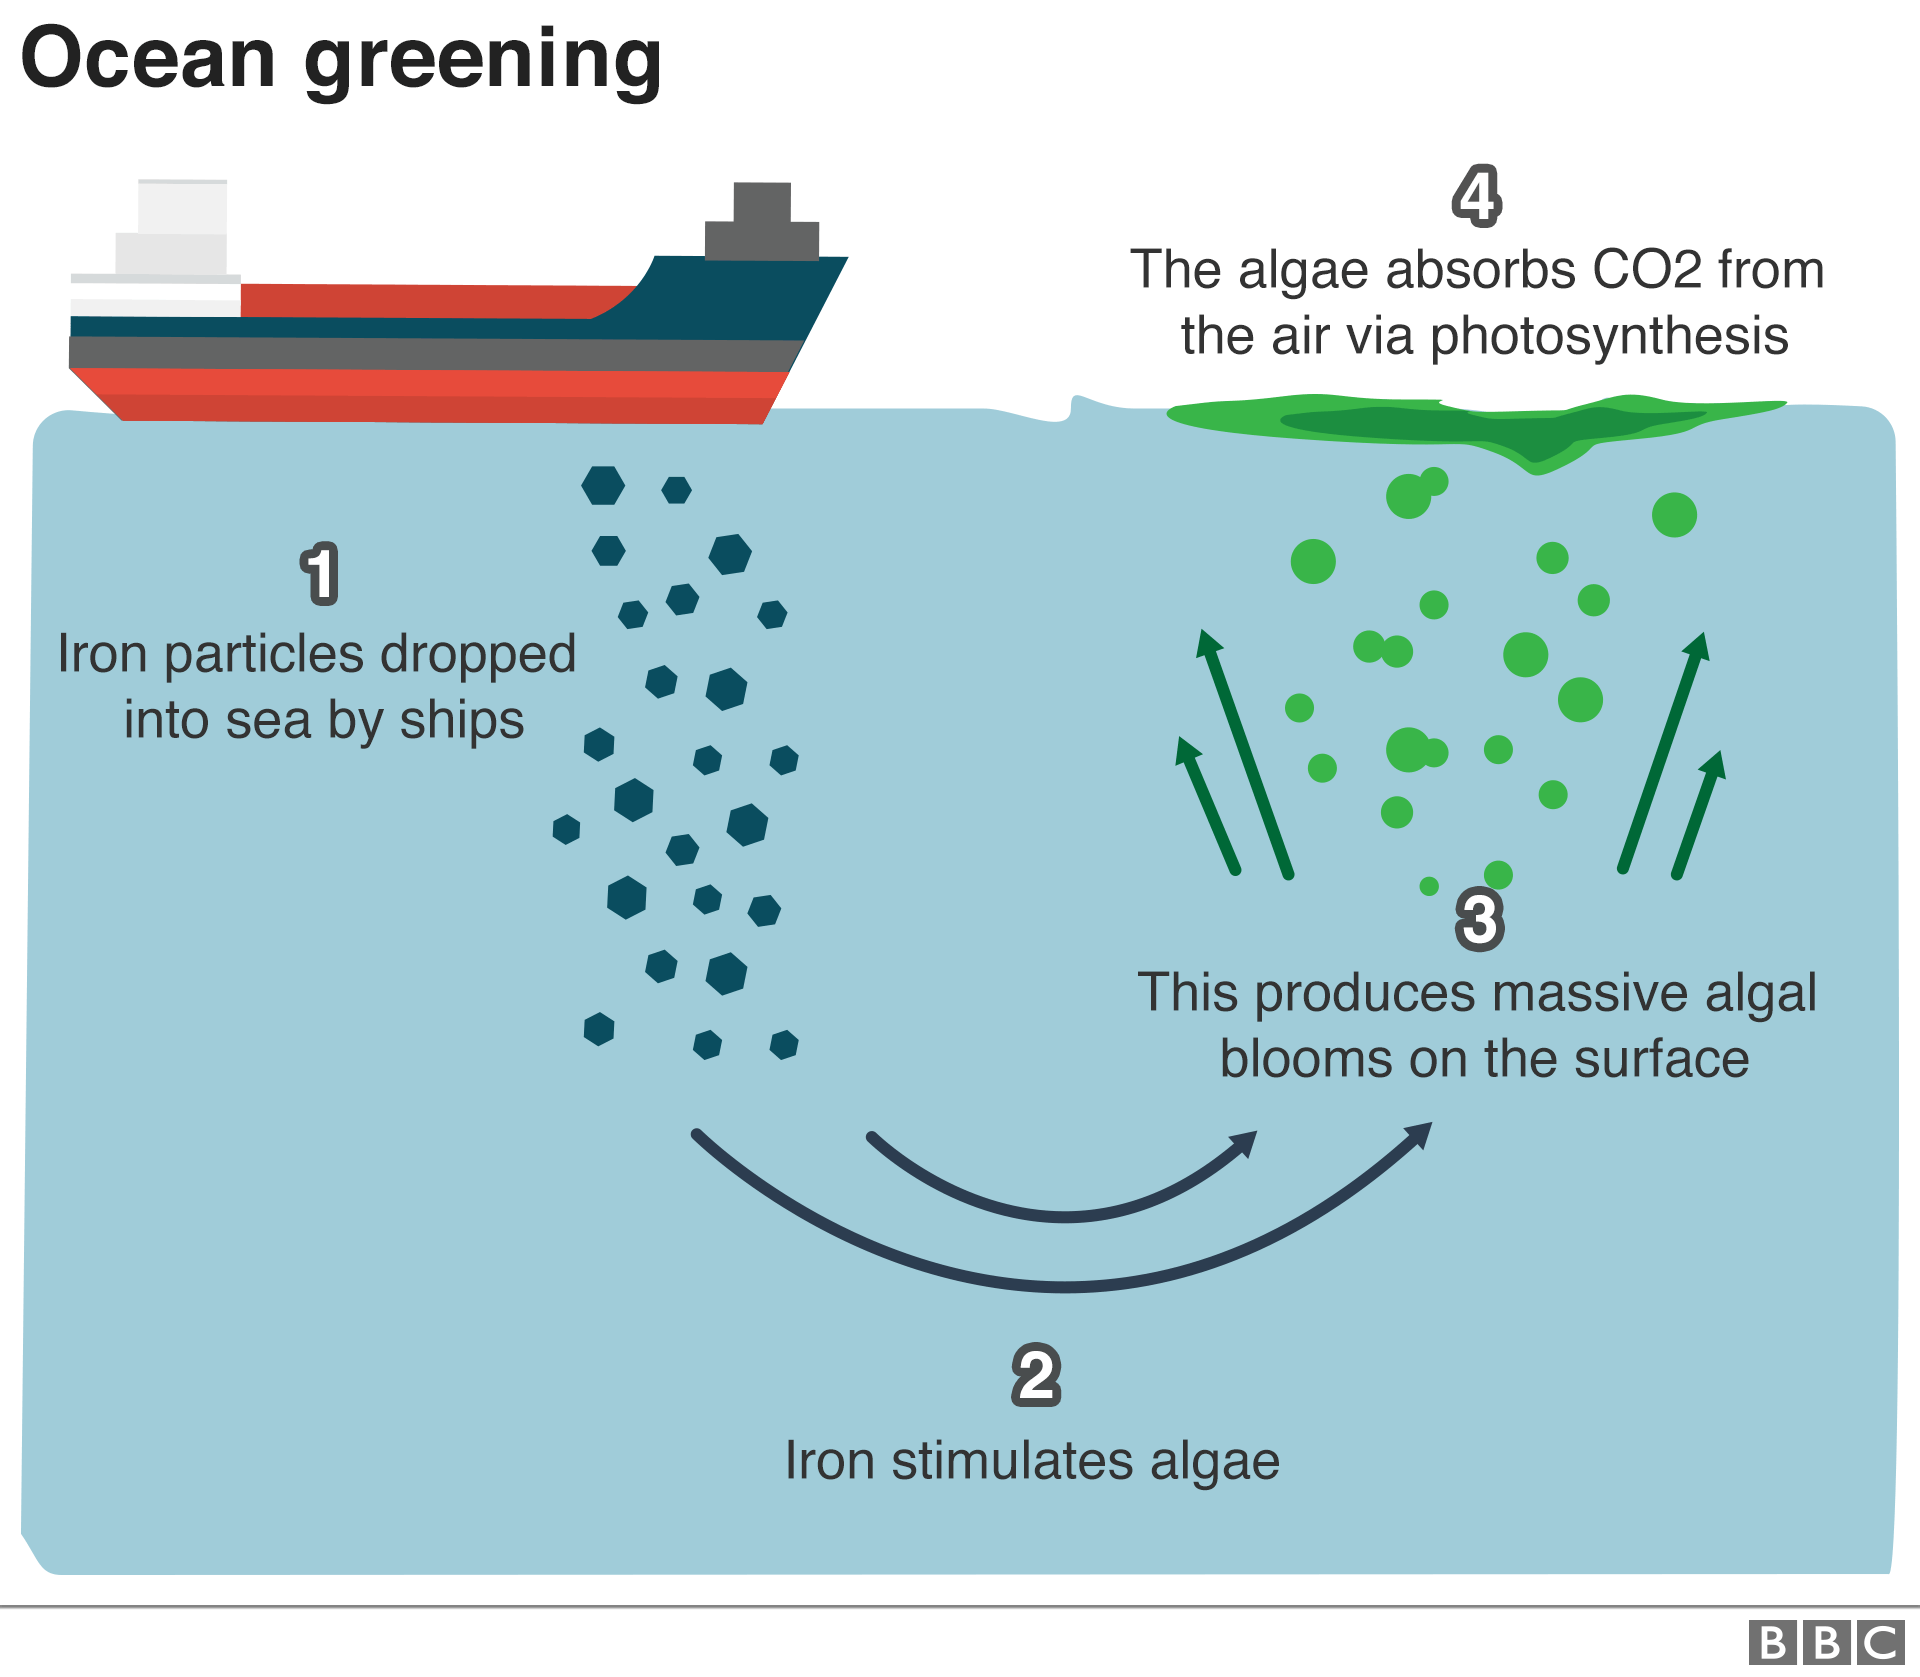 Graphic: How 'ocean greening' could work